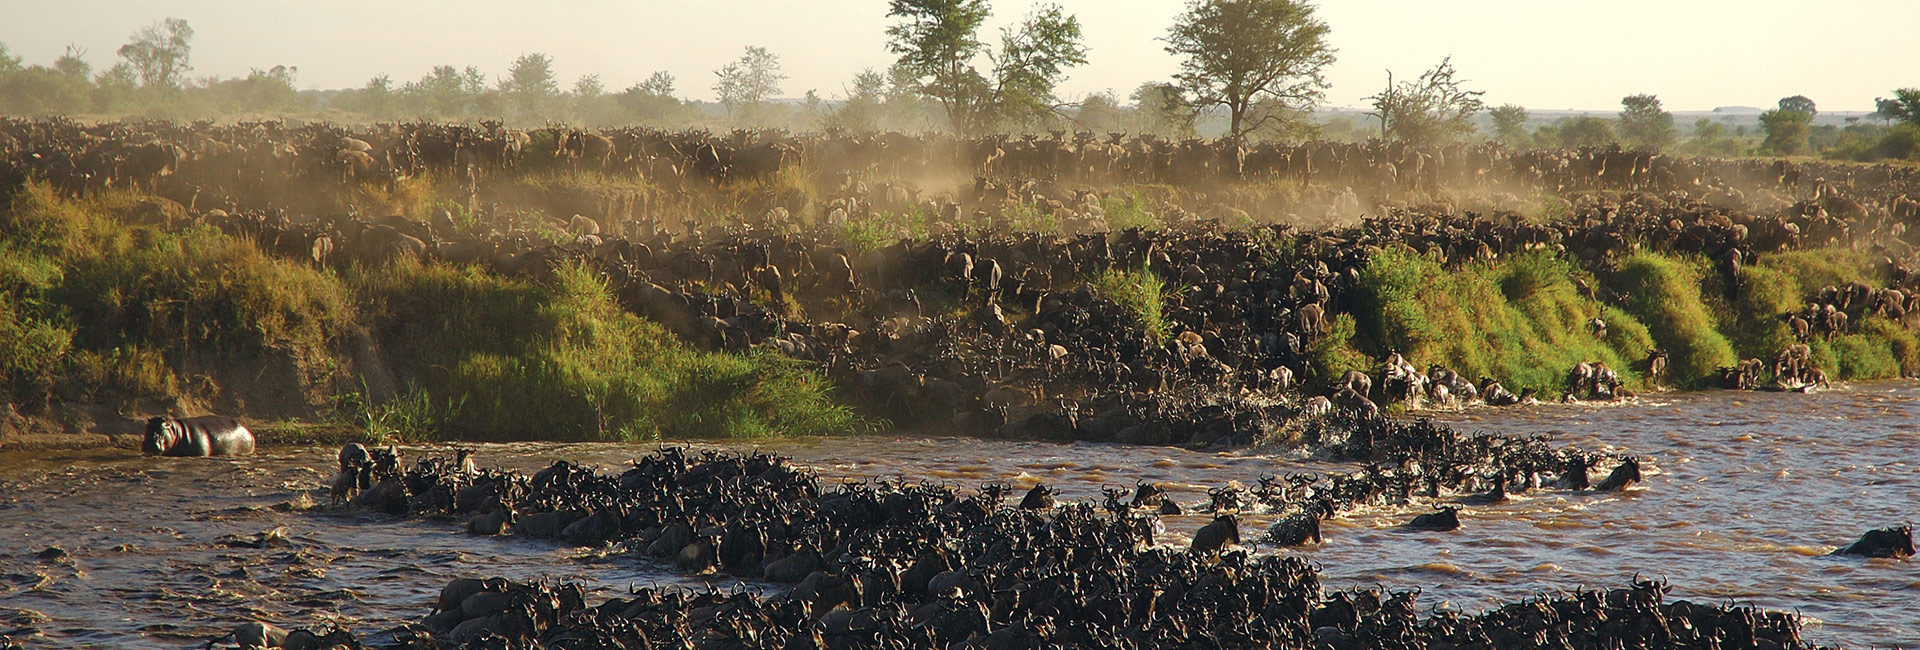 Witness the phenomenon of the Great Migration